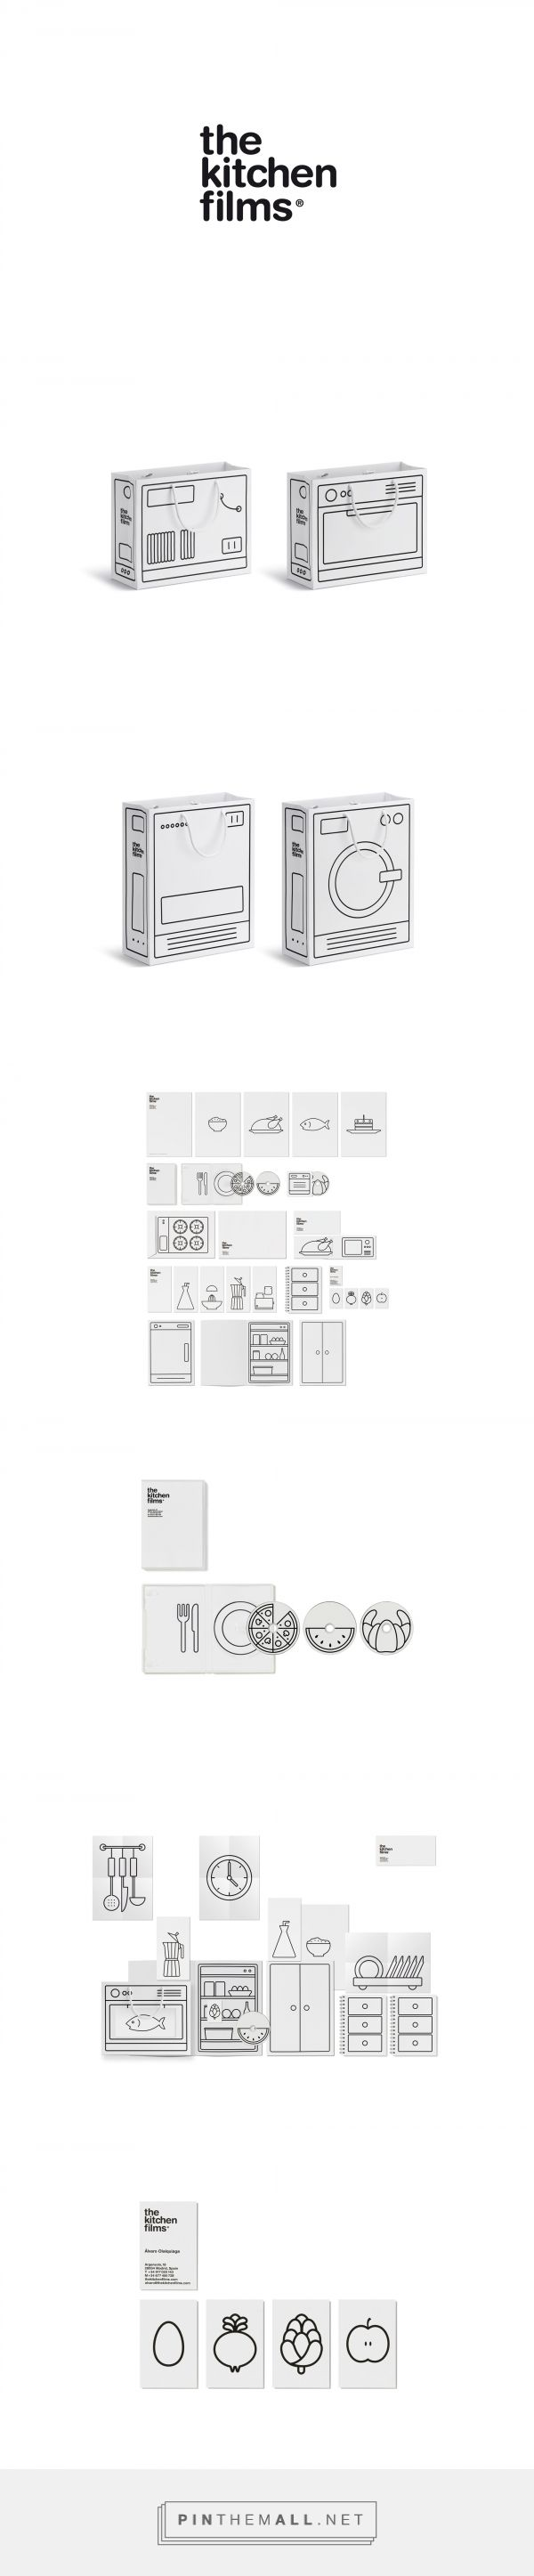 Black and white corporate identity and packaging for The Kitchen Films by Ruiz + Company curated by Packaging Diva PD.